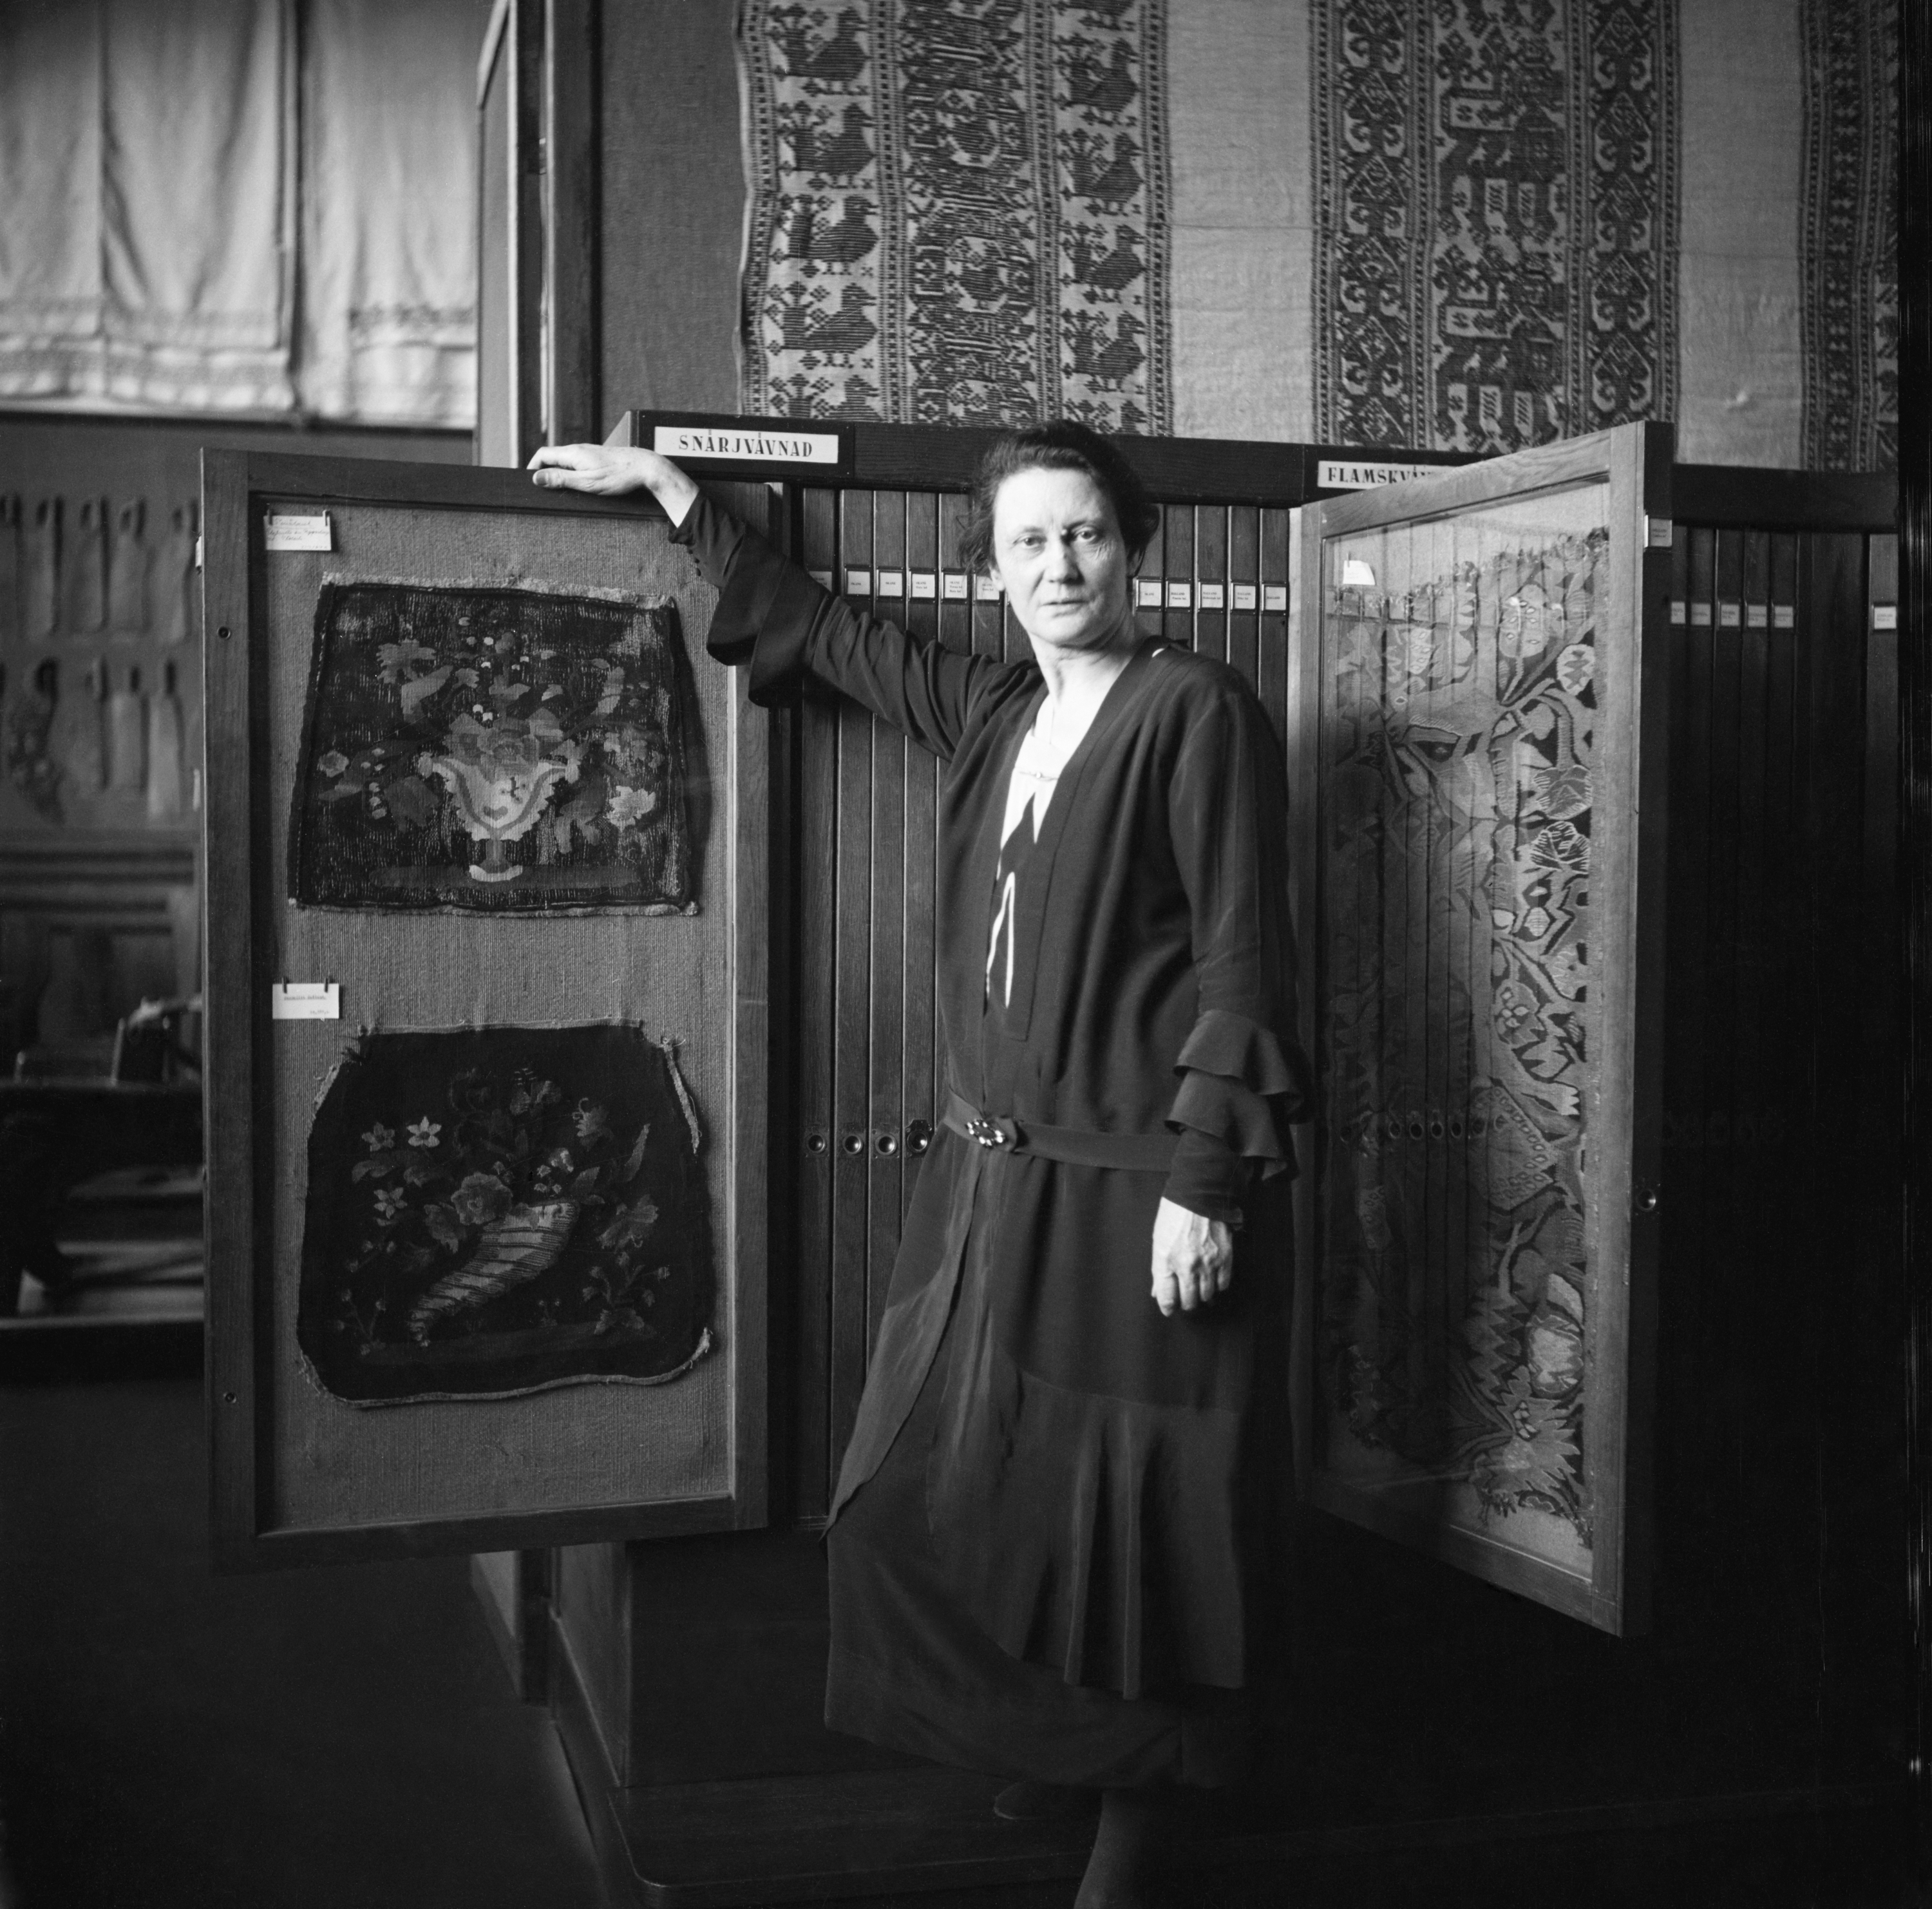 Emelie von Walterstorff with samples from the textile collection at Nordiska museet. Photographer and year unknown. Nordiska museet (NMA.0058669)